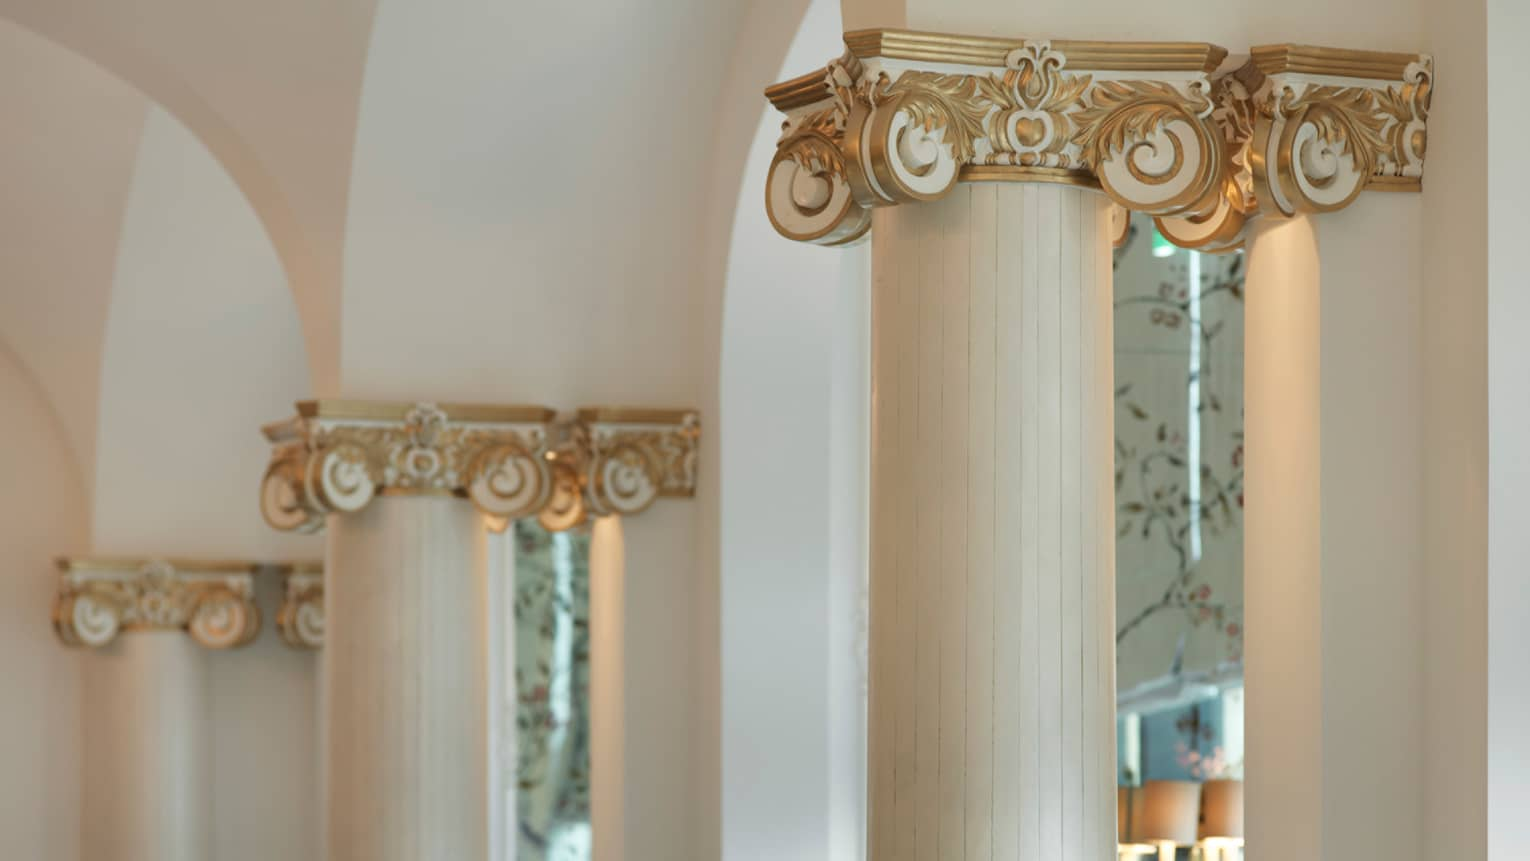 Close-up of top of white pillars with Beaux-Arts style decorative gold detail